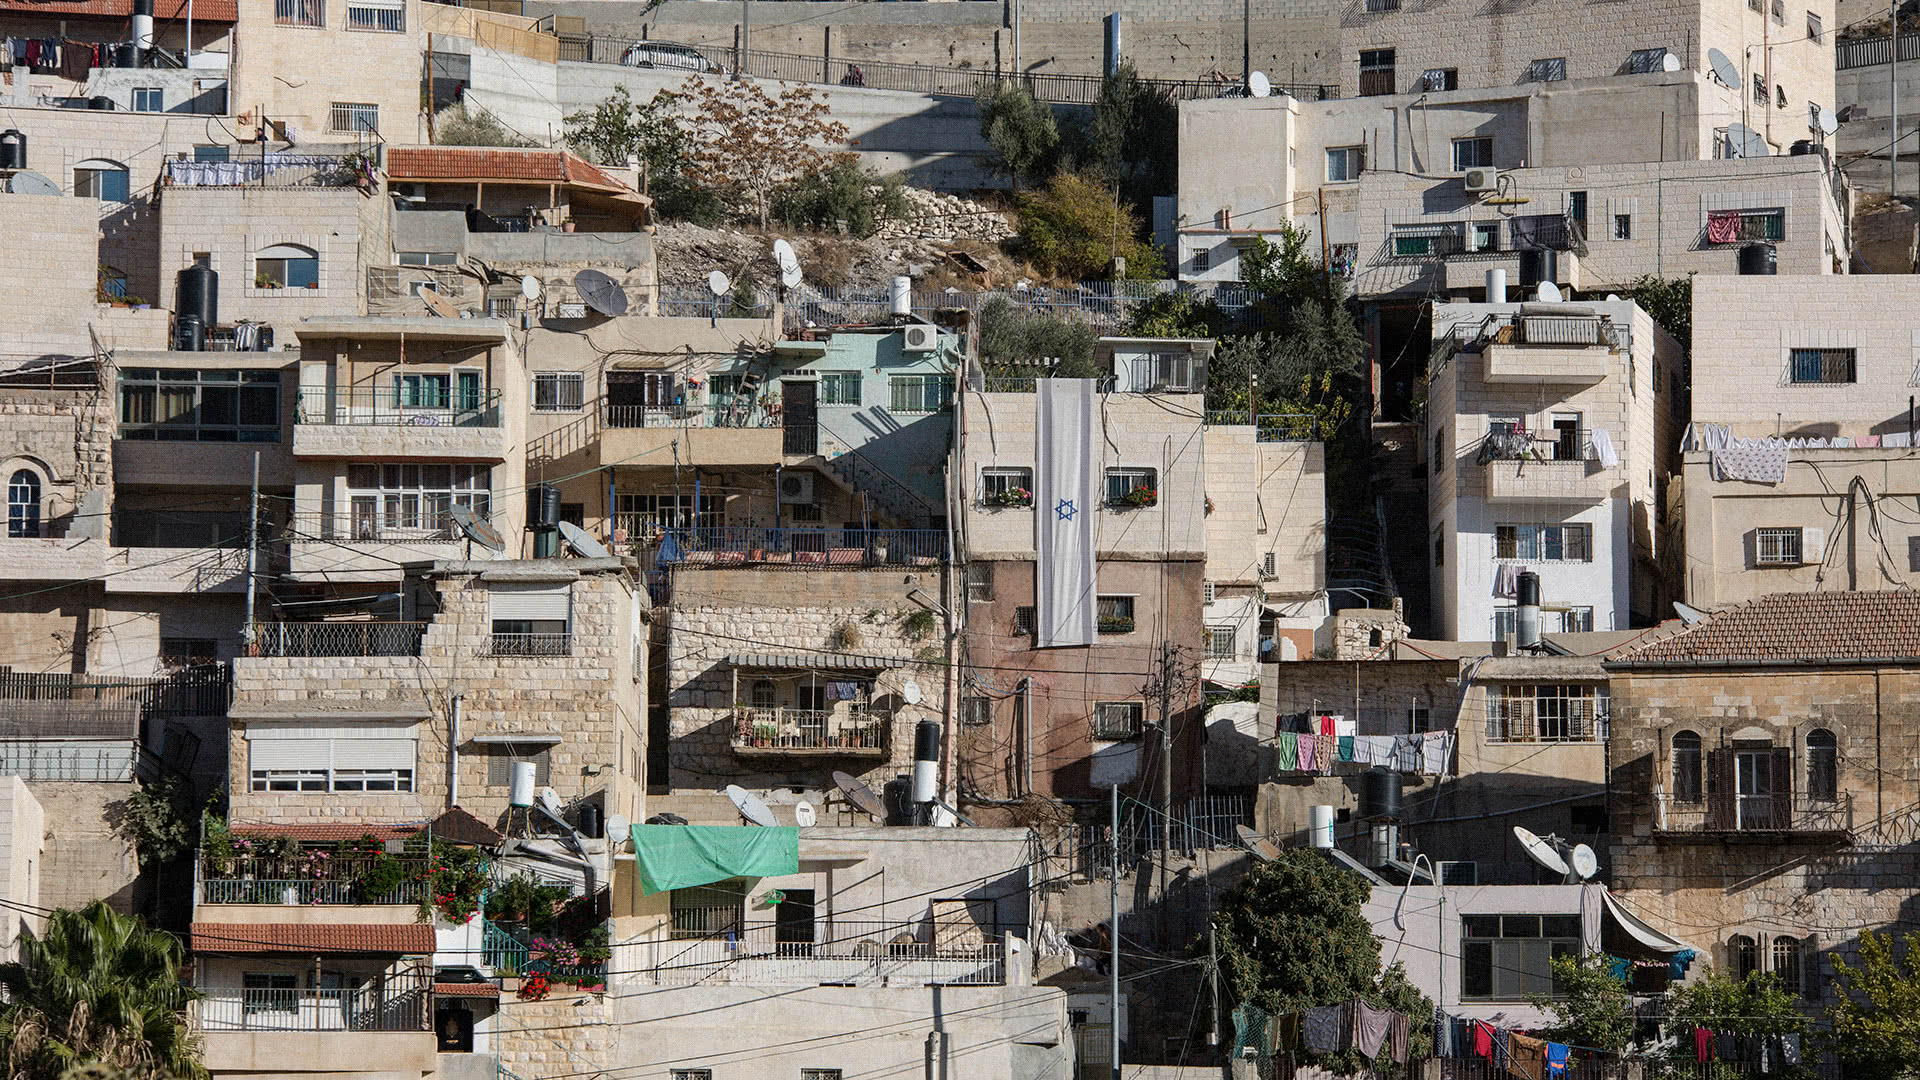 An Israeli flag hangs from a house inhabited by Israeli settlers in the Palestinian neighborhood of Silwan on May 4, 2017. (Photo: Faiz Abu Rmeleh)